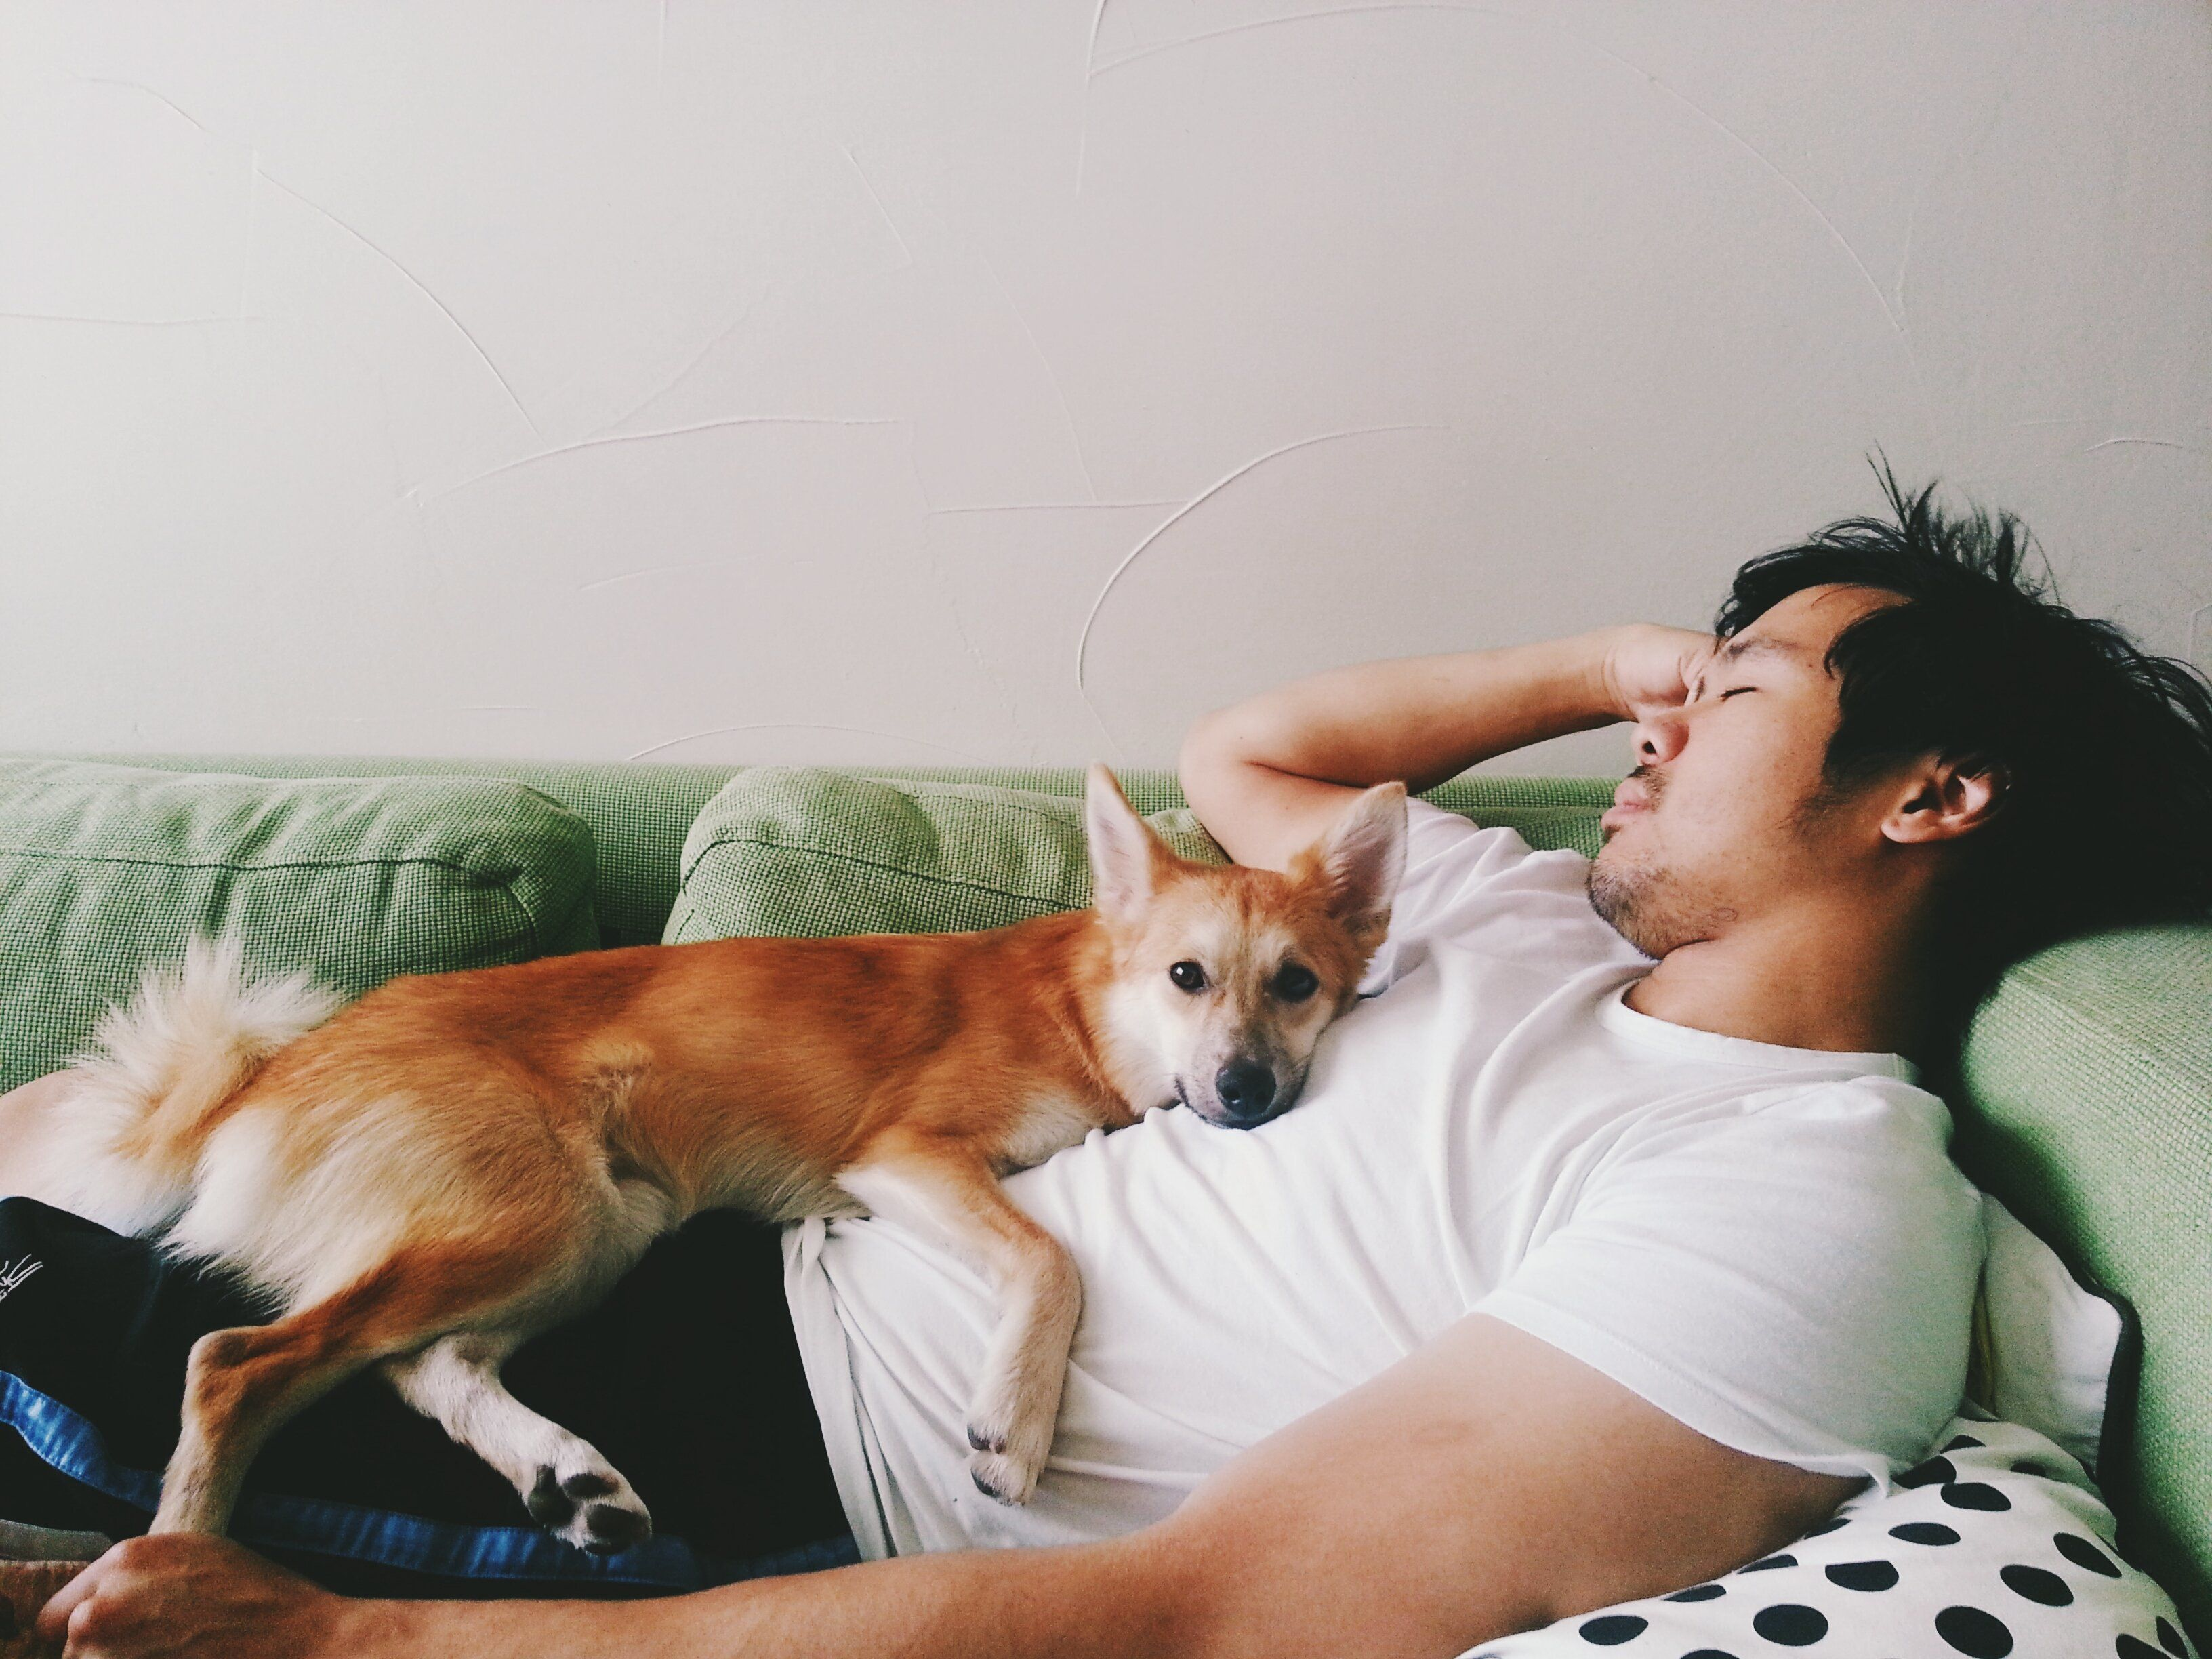 My husband and our puppy, a Shiba Inu Mix, shares cuddles on the couch.